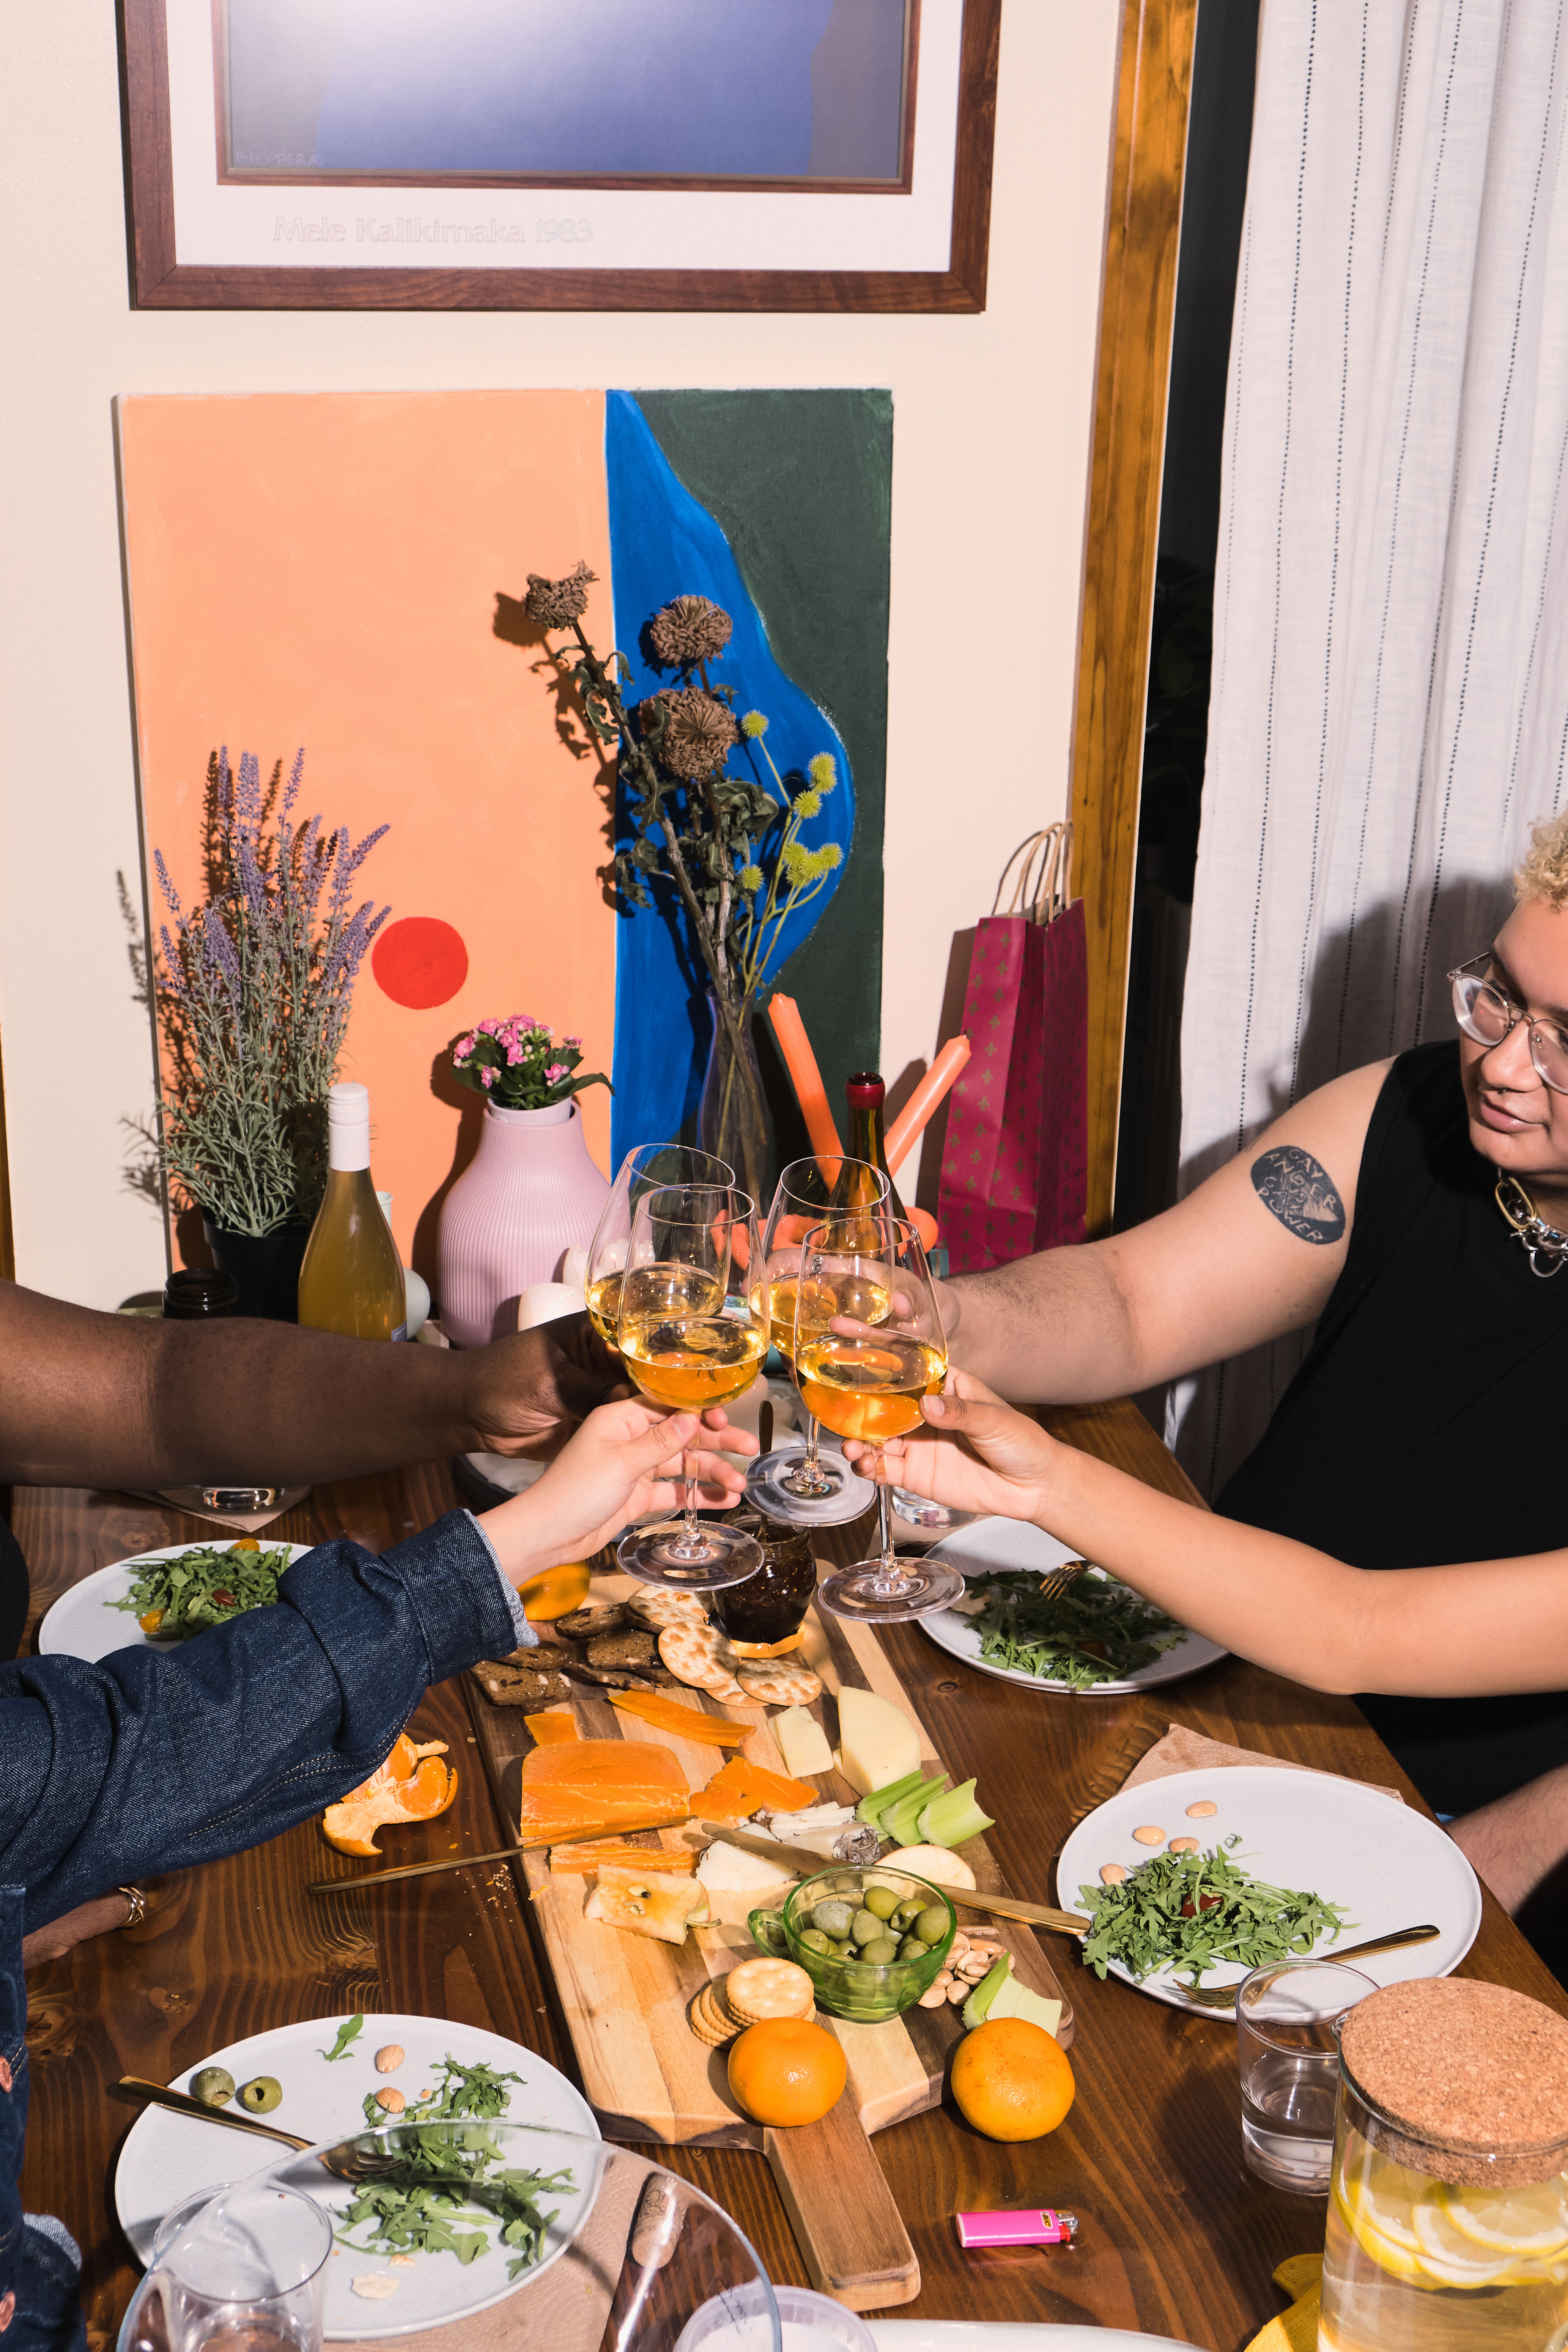 A group of friends of varying genders celebrating at a dinner party(2)